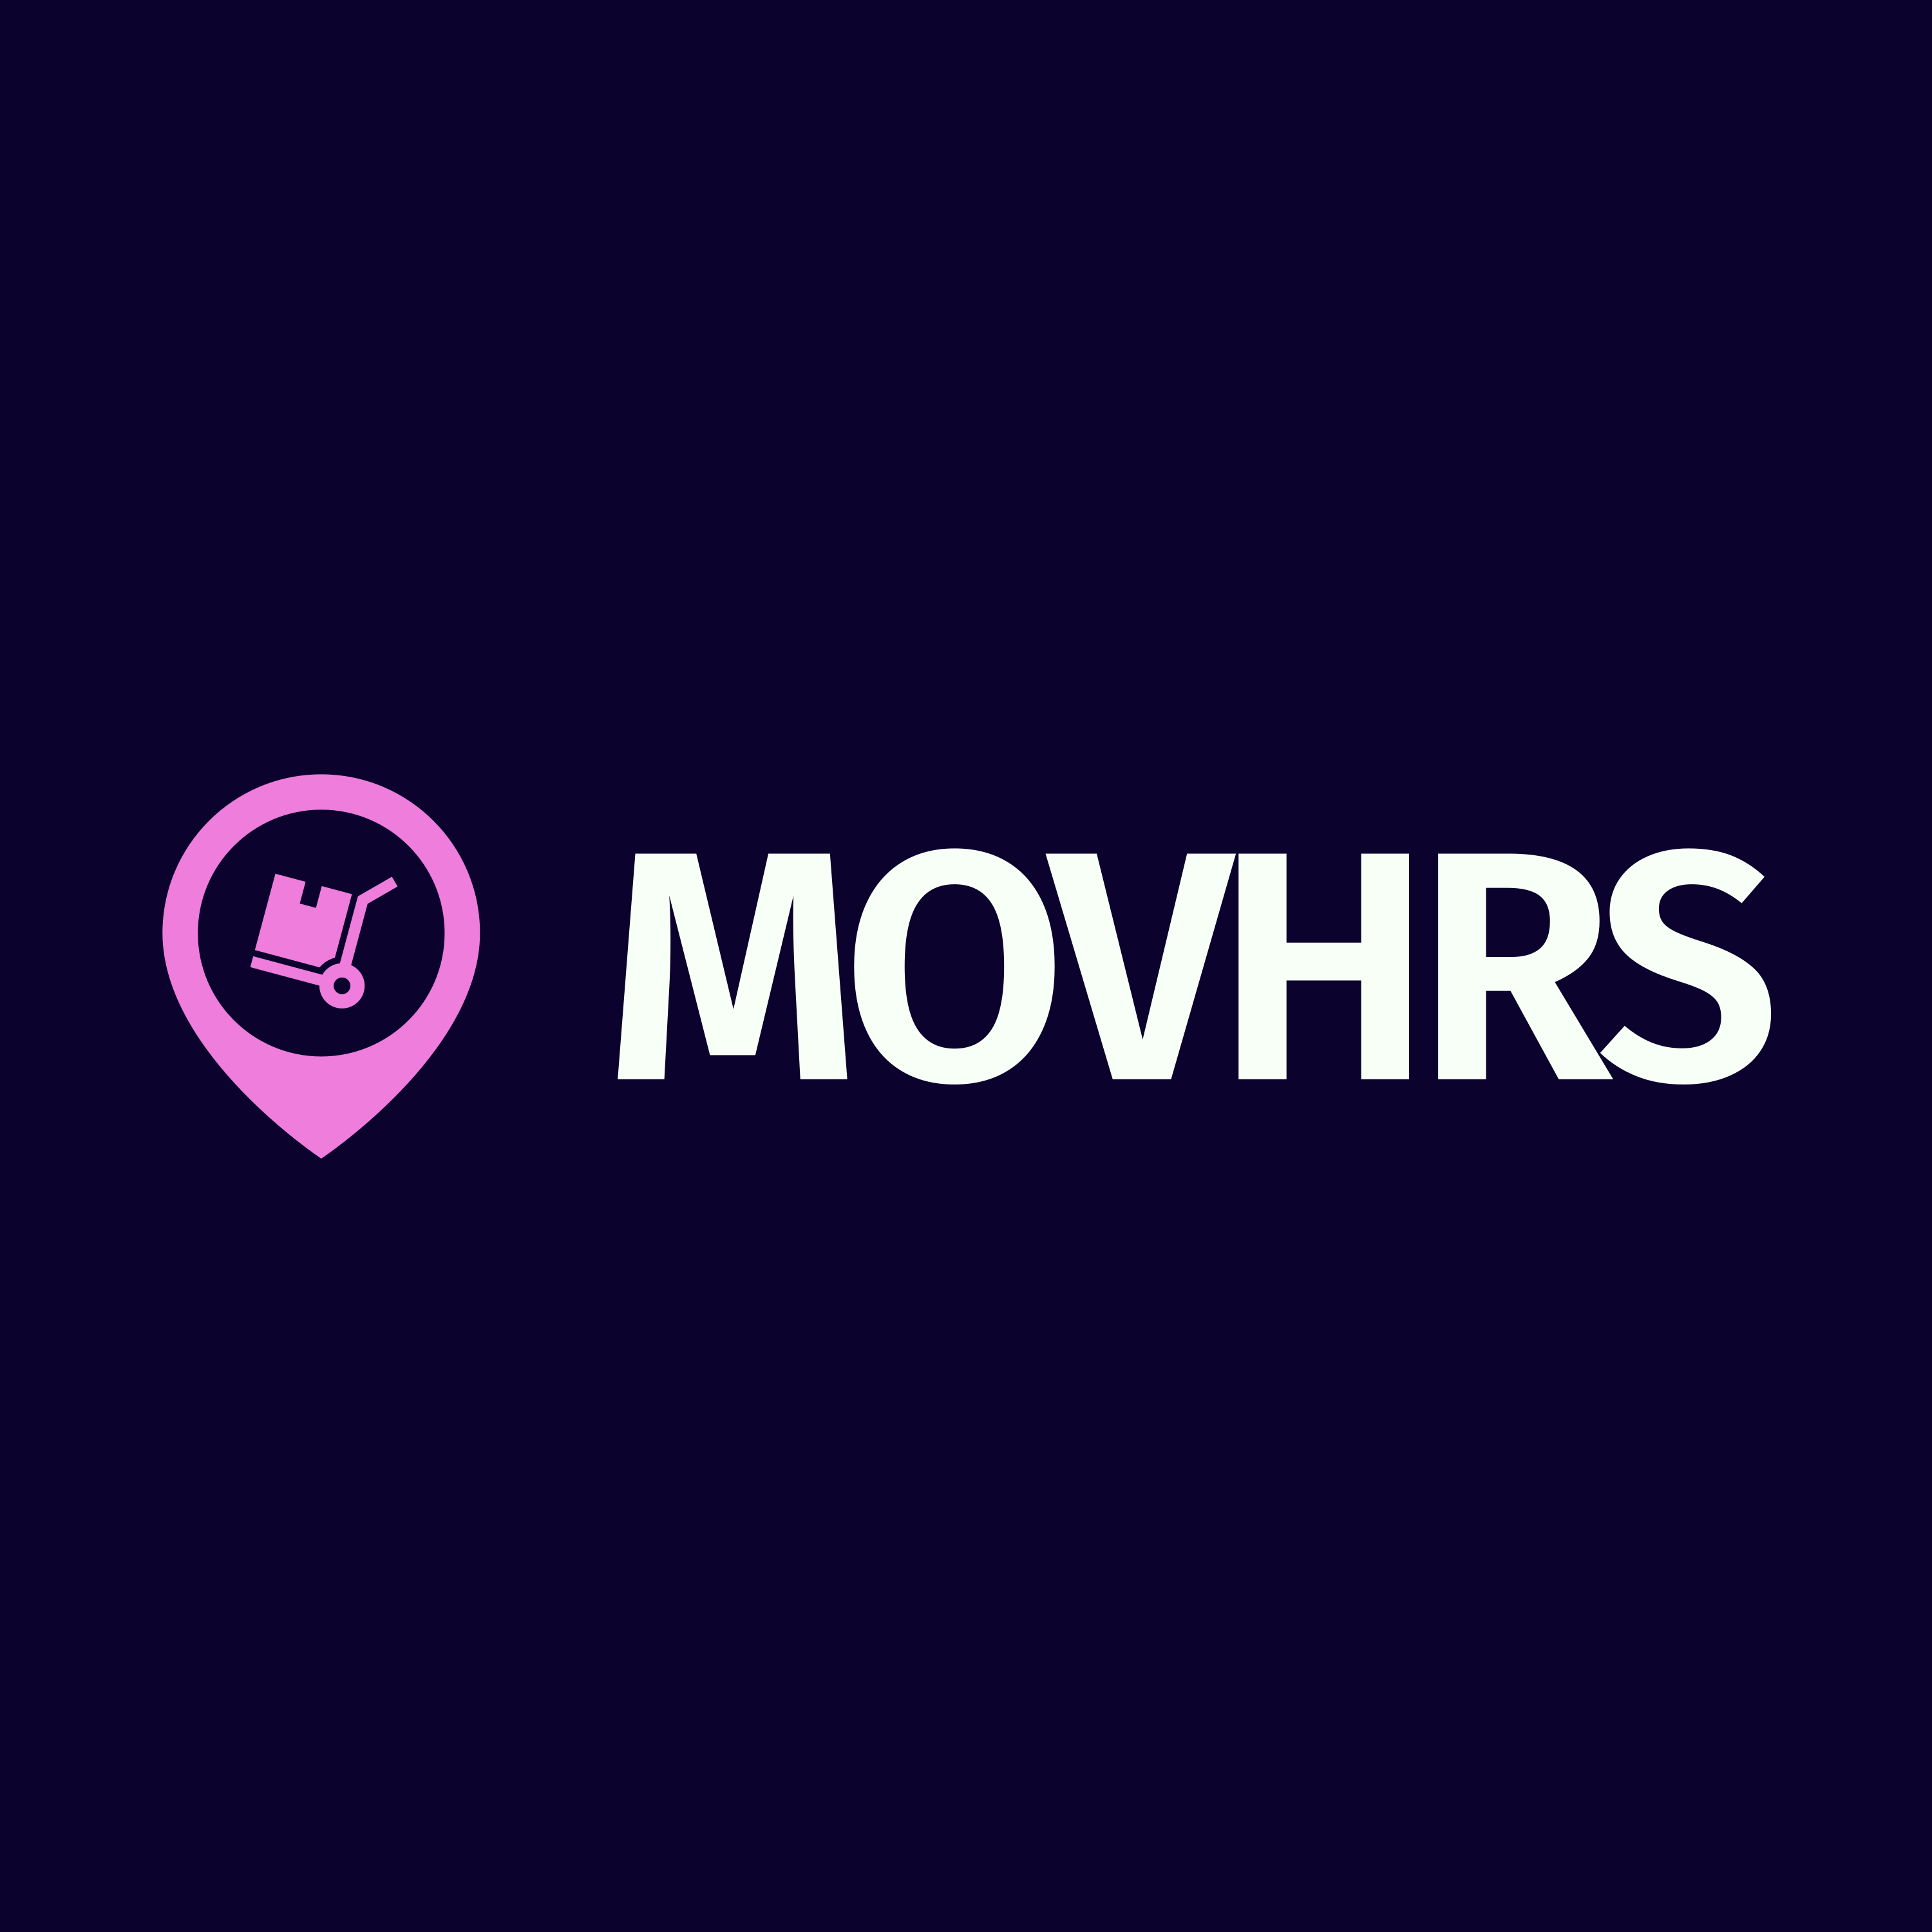 MOVHRS